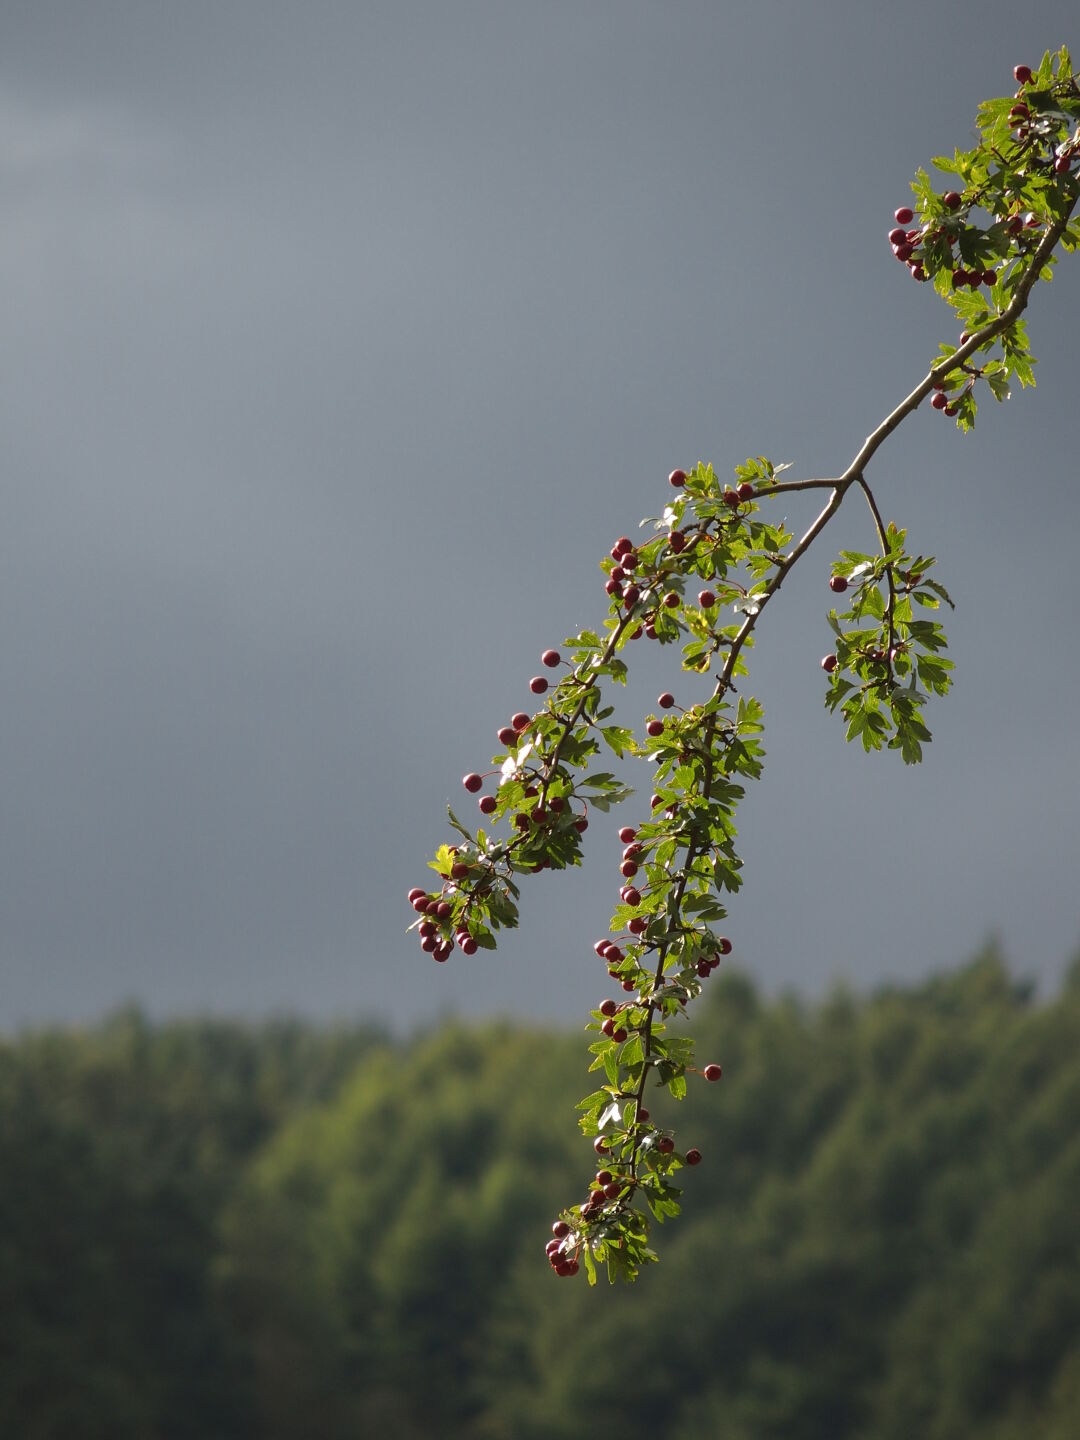 Twig with berries.